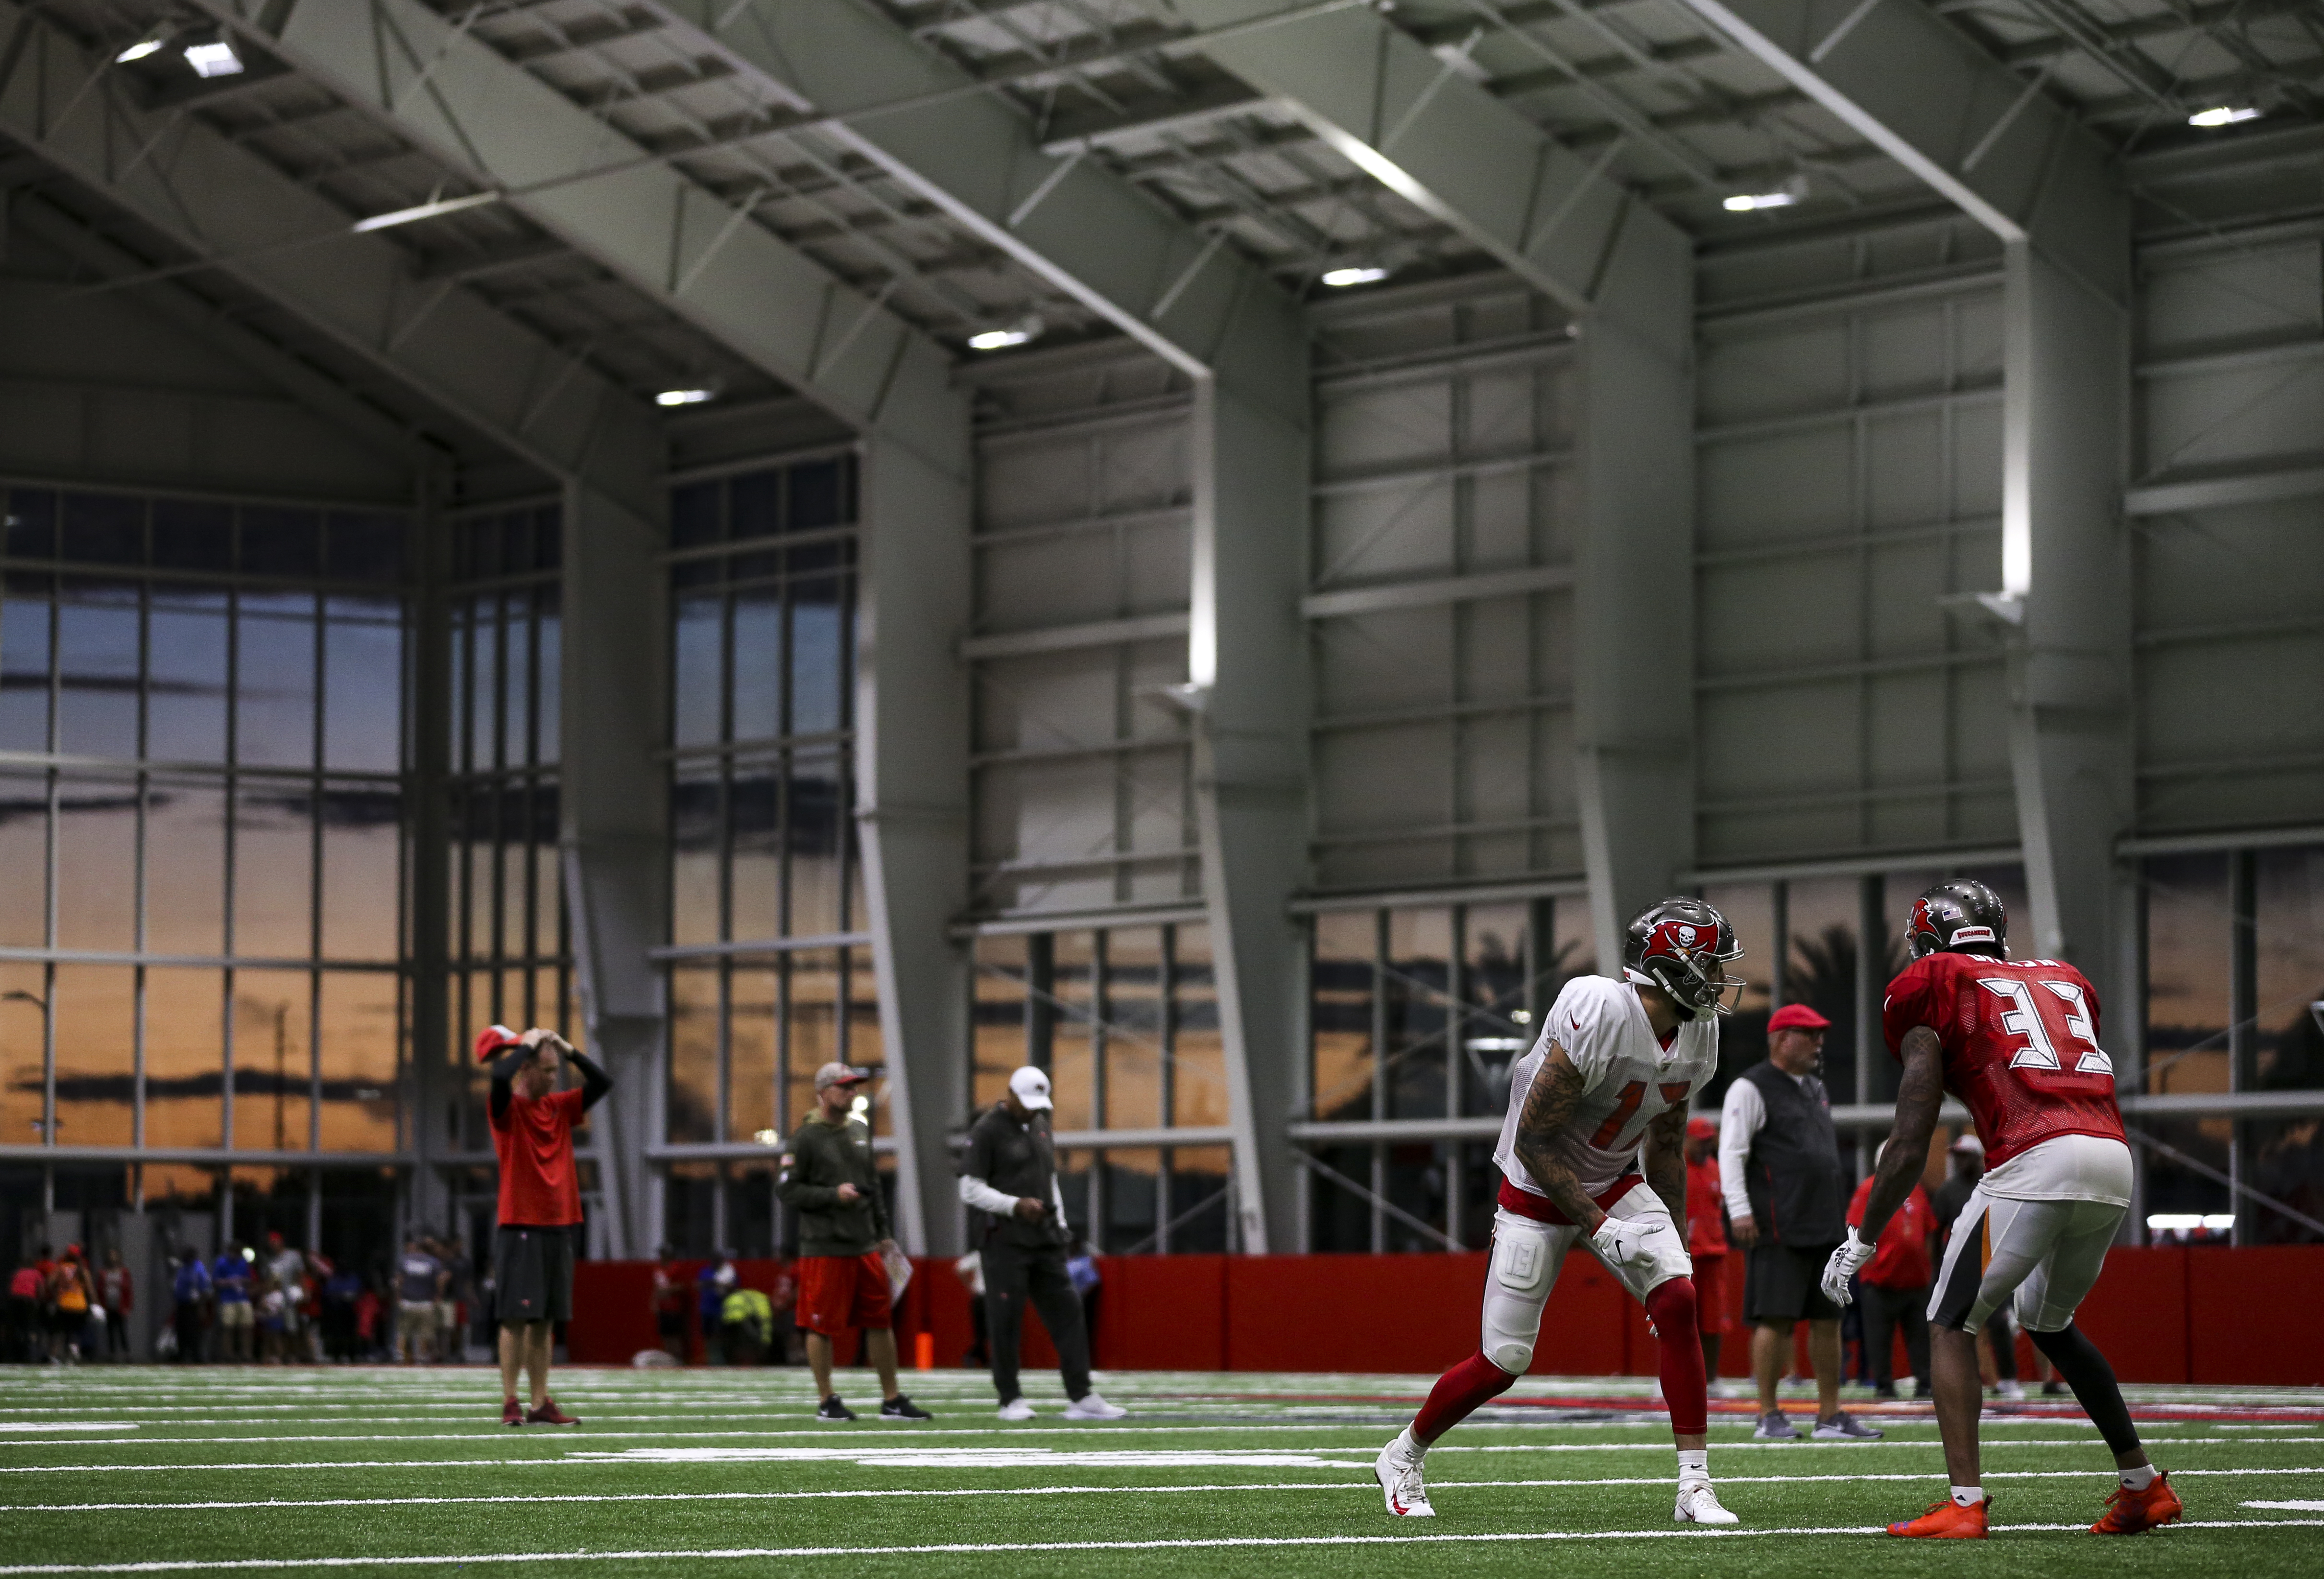 Bucs Bringing The Heat Indoors To Simulate Florida Weather